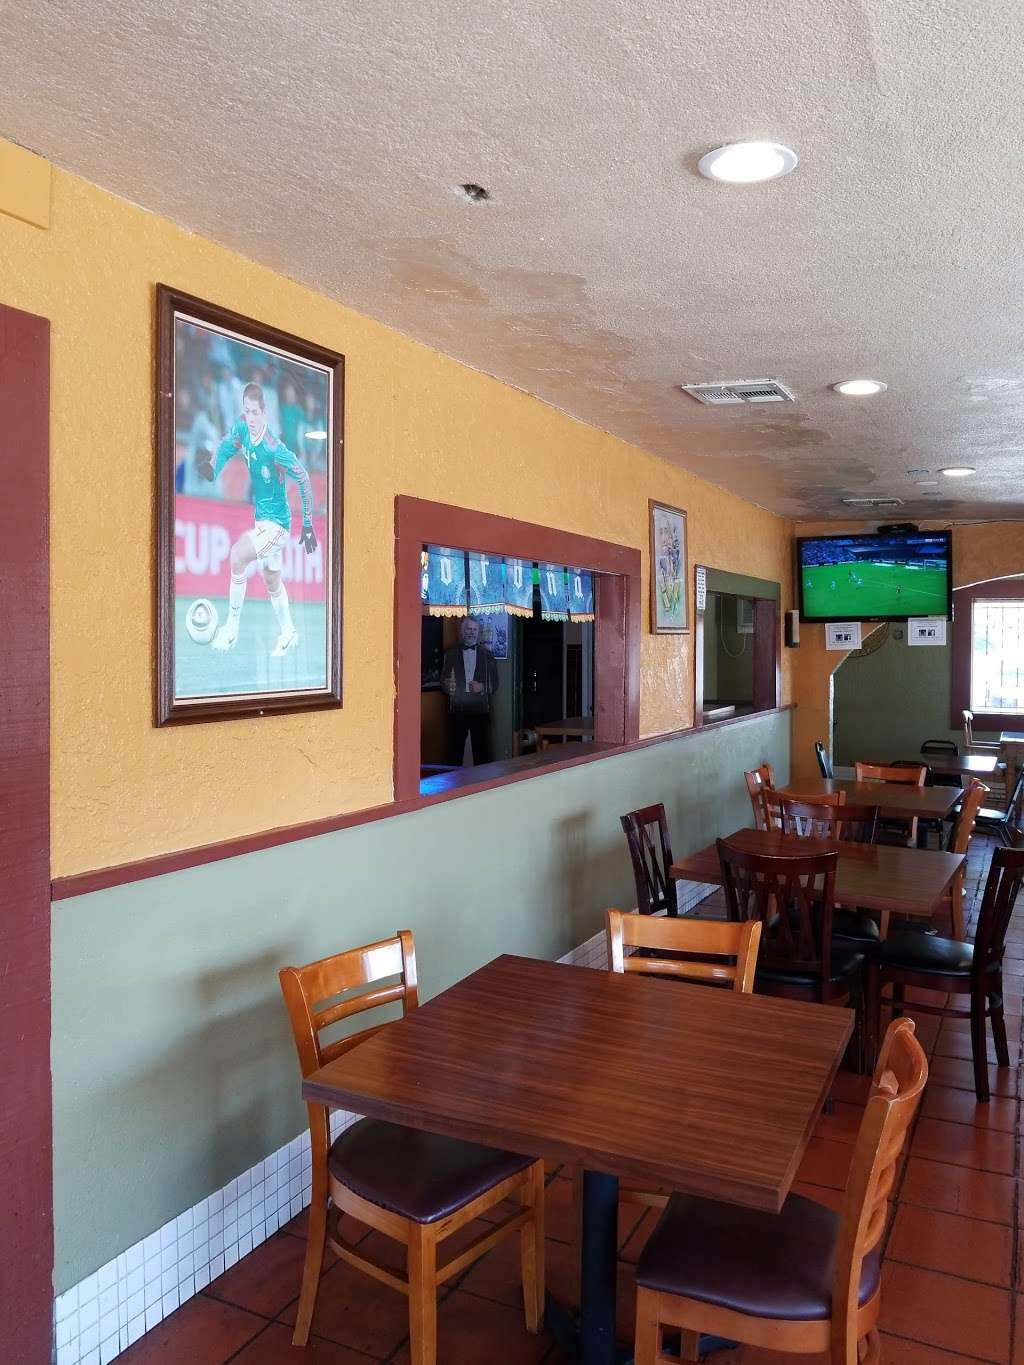 Gardunos Sports Bar and Grill - meal delivery  | Photo 3 of 10 | Address: 9823 Valley Blvd, El Monte, CA 91731, USA | Phone: (626) 448-4746